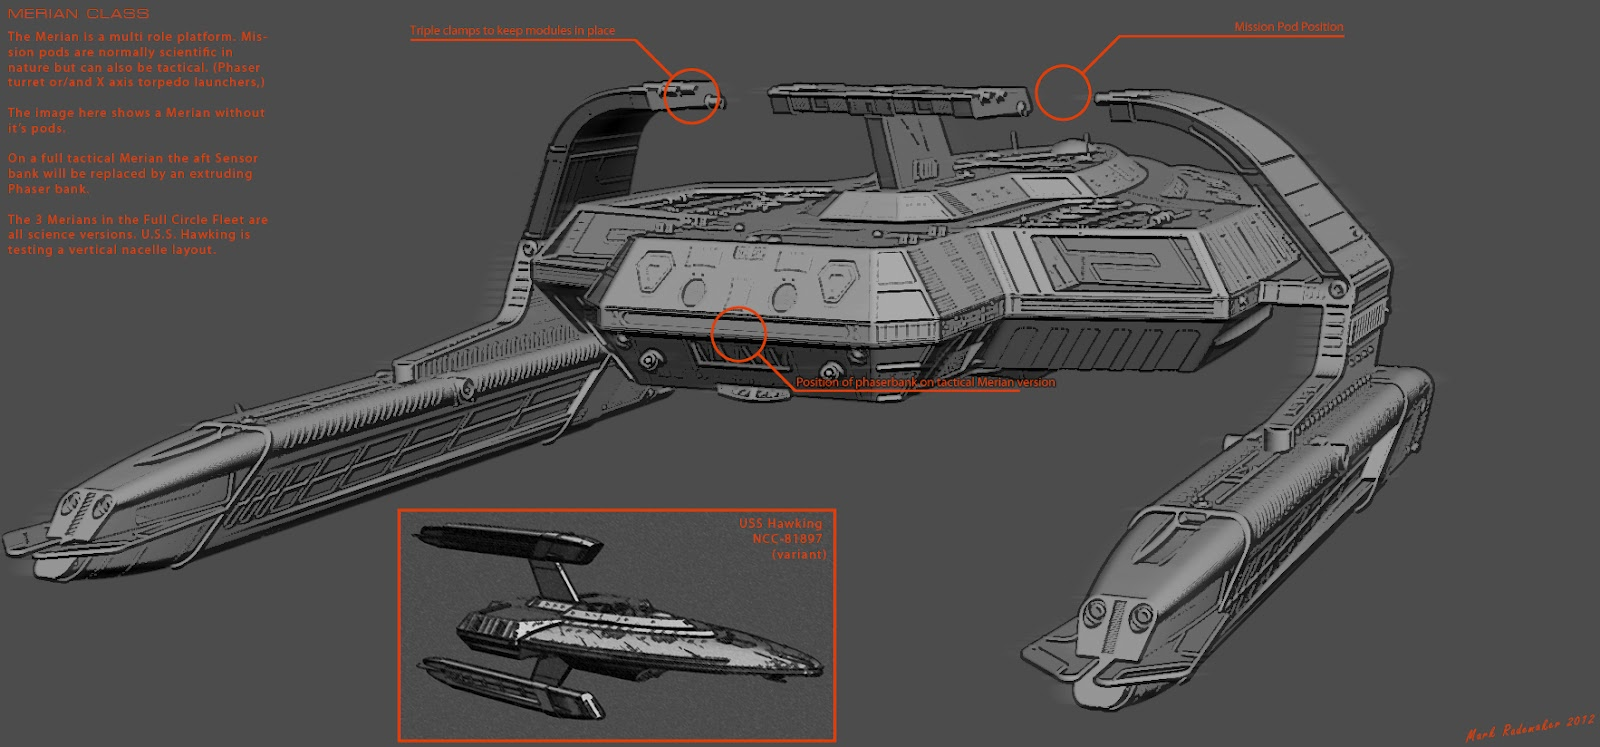 The Trek Collective: Latest Full Circle fleet images